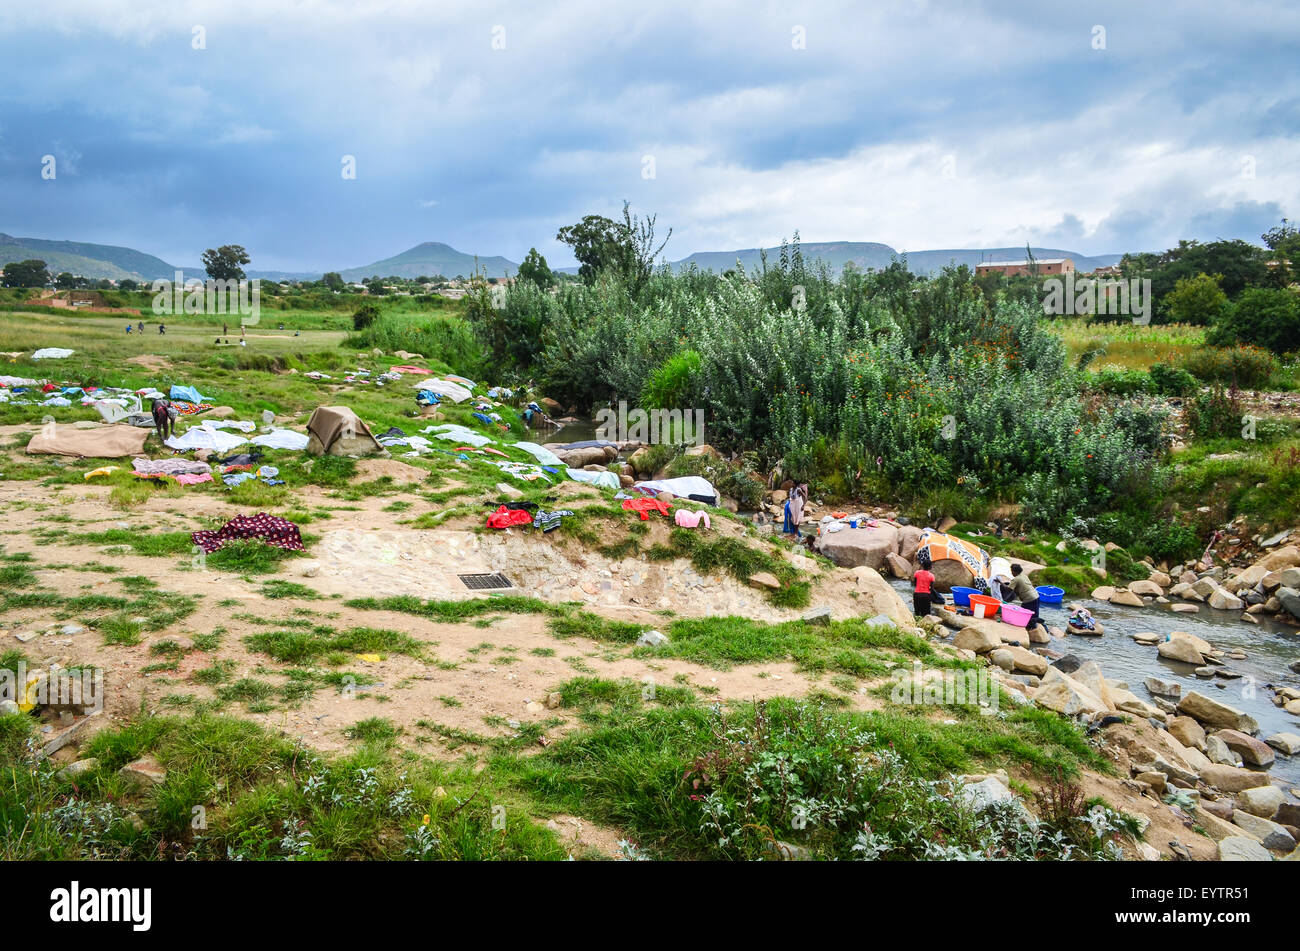 Laundry at the river in Angola (Lubango suburbs) - Stock Image